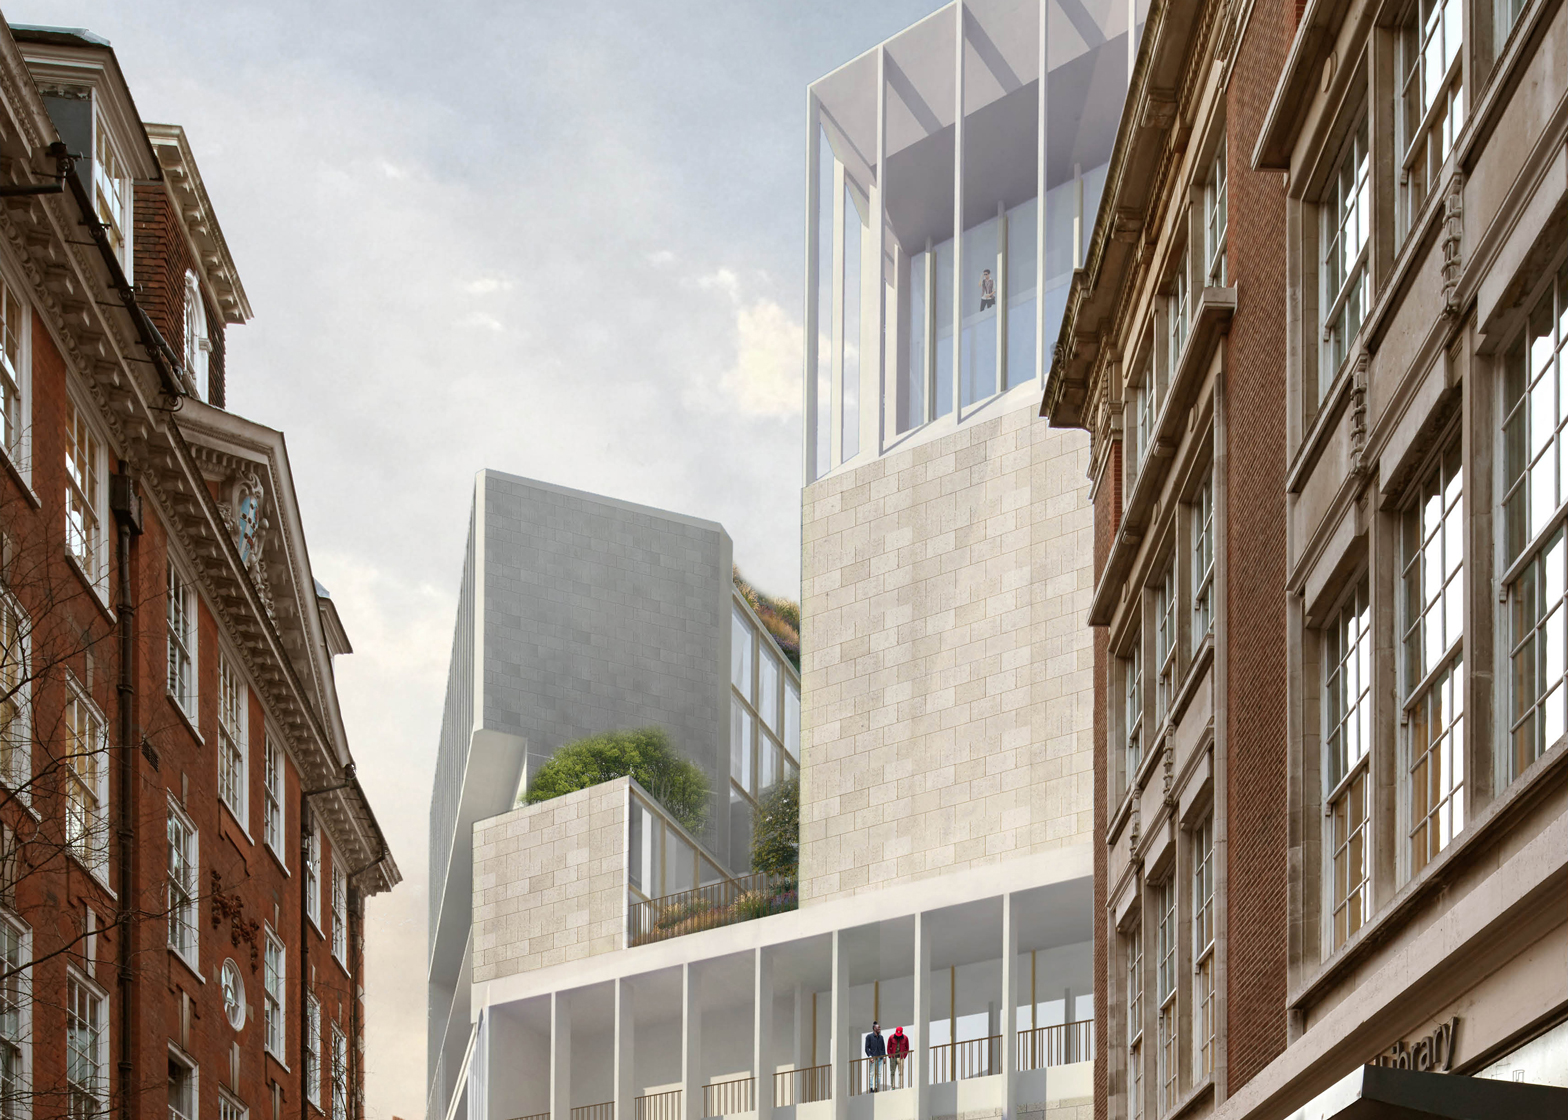 grafton architects wins contest for new lse building in london